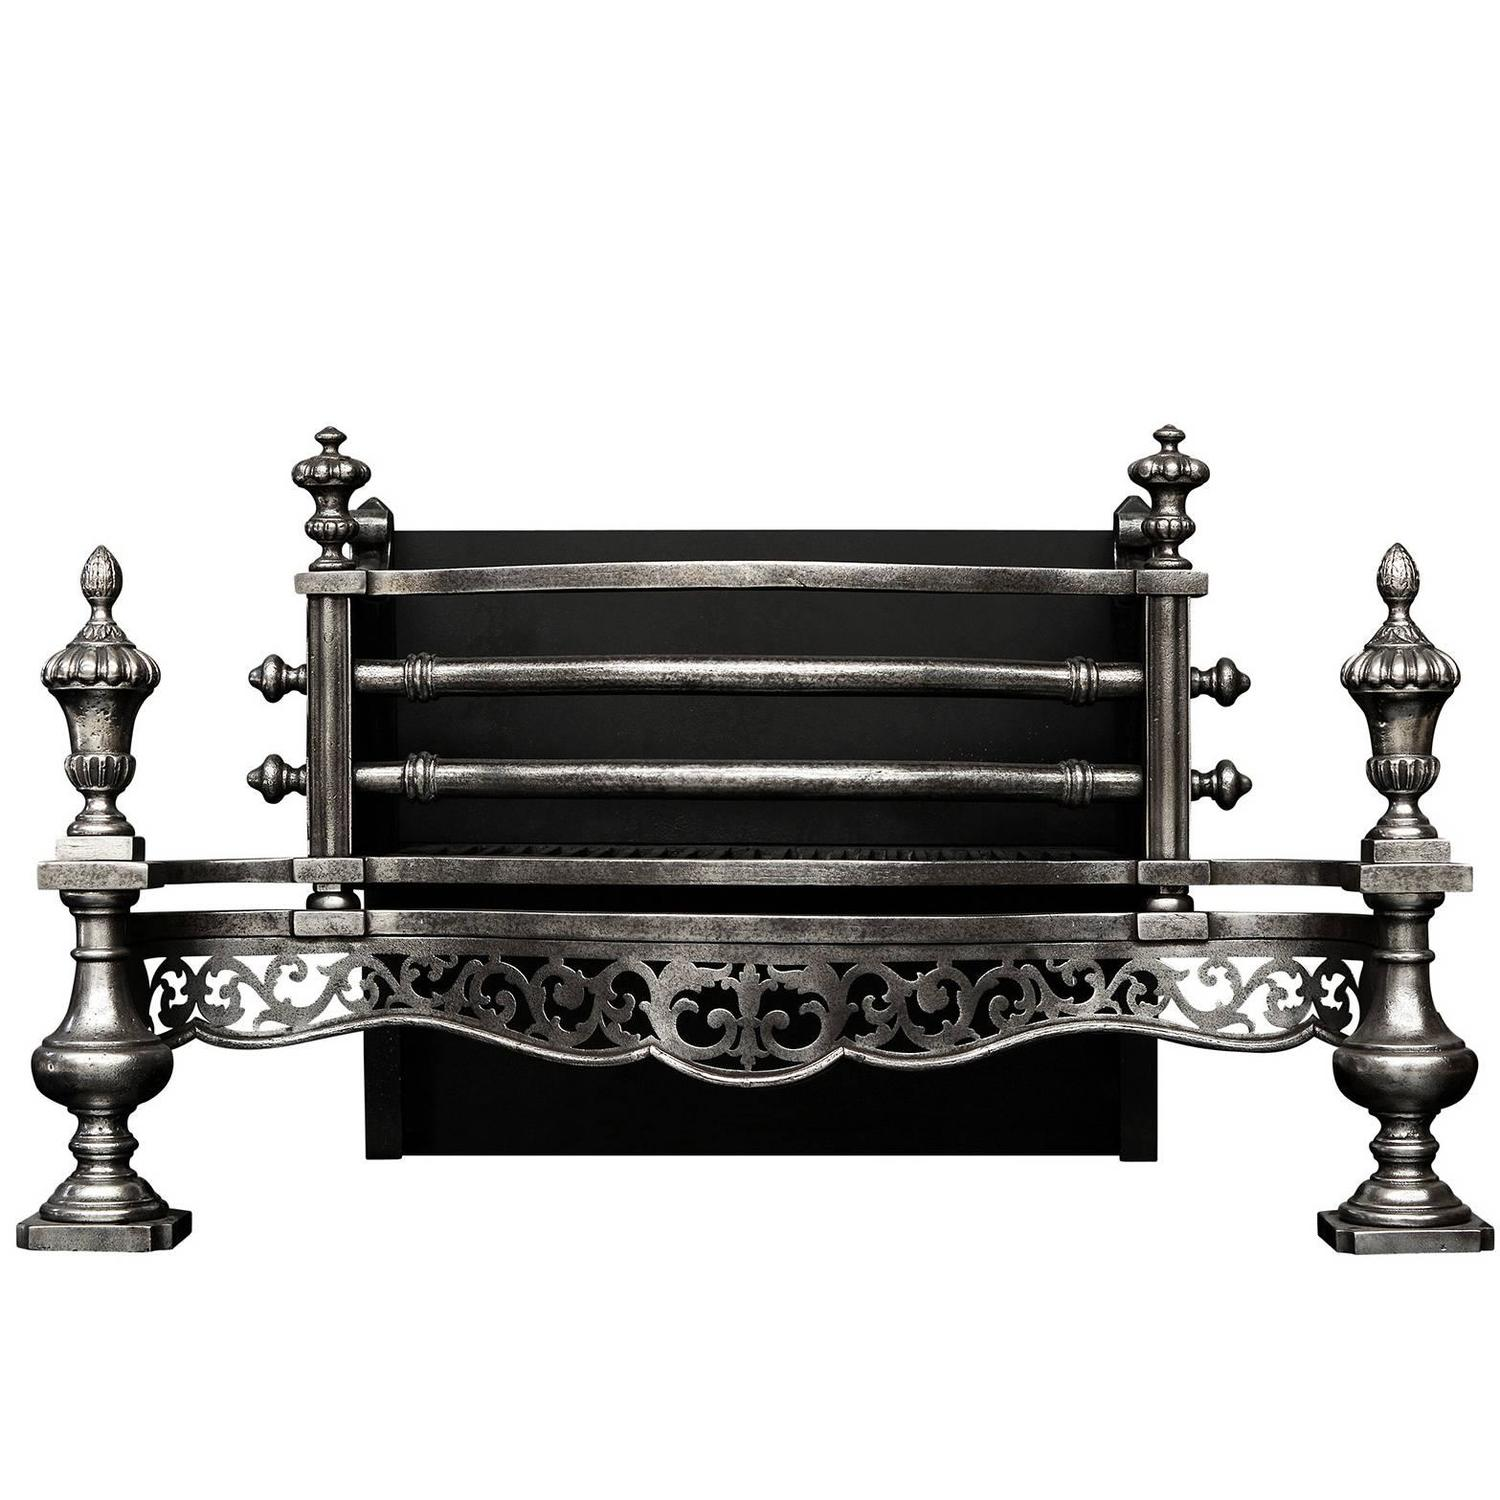 English Polished Steel Fireplace Grate For Sale At 1stdibs